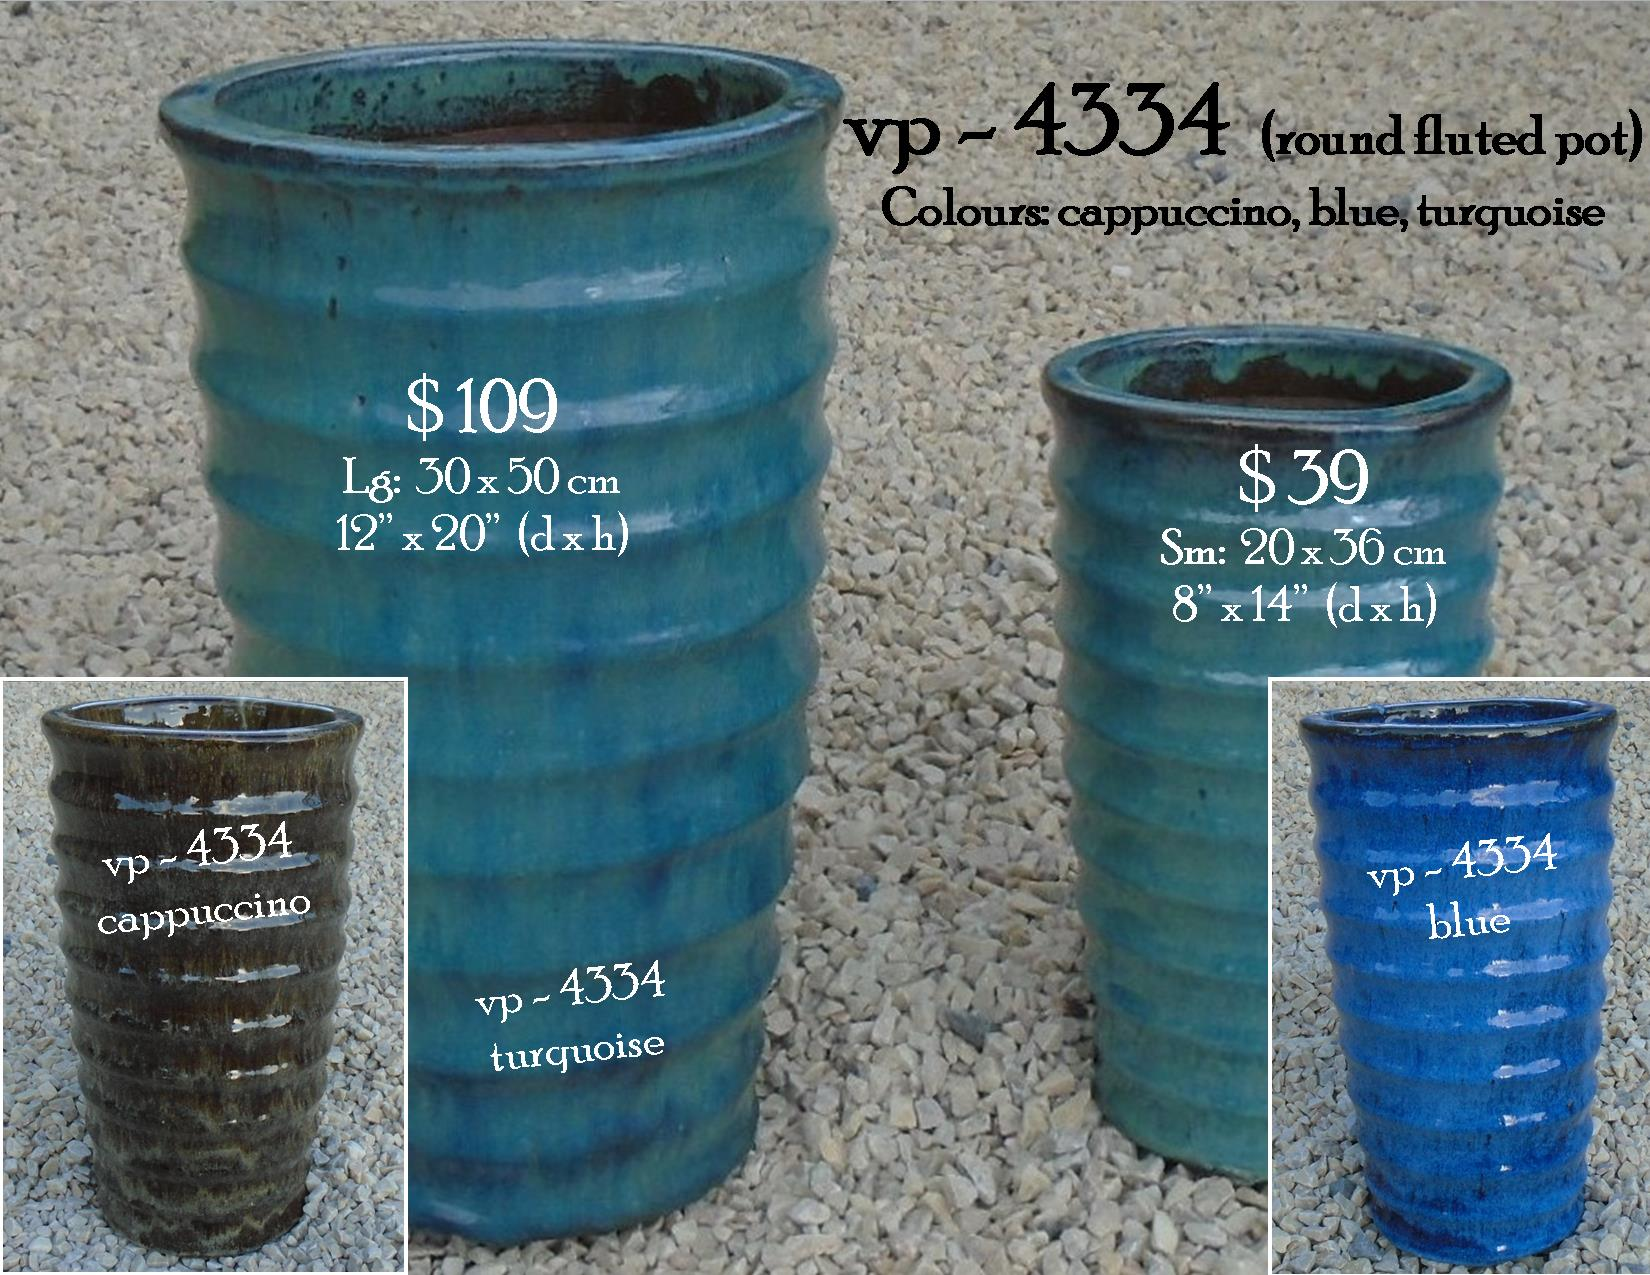 vp - 4334  round fluted pot